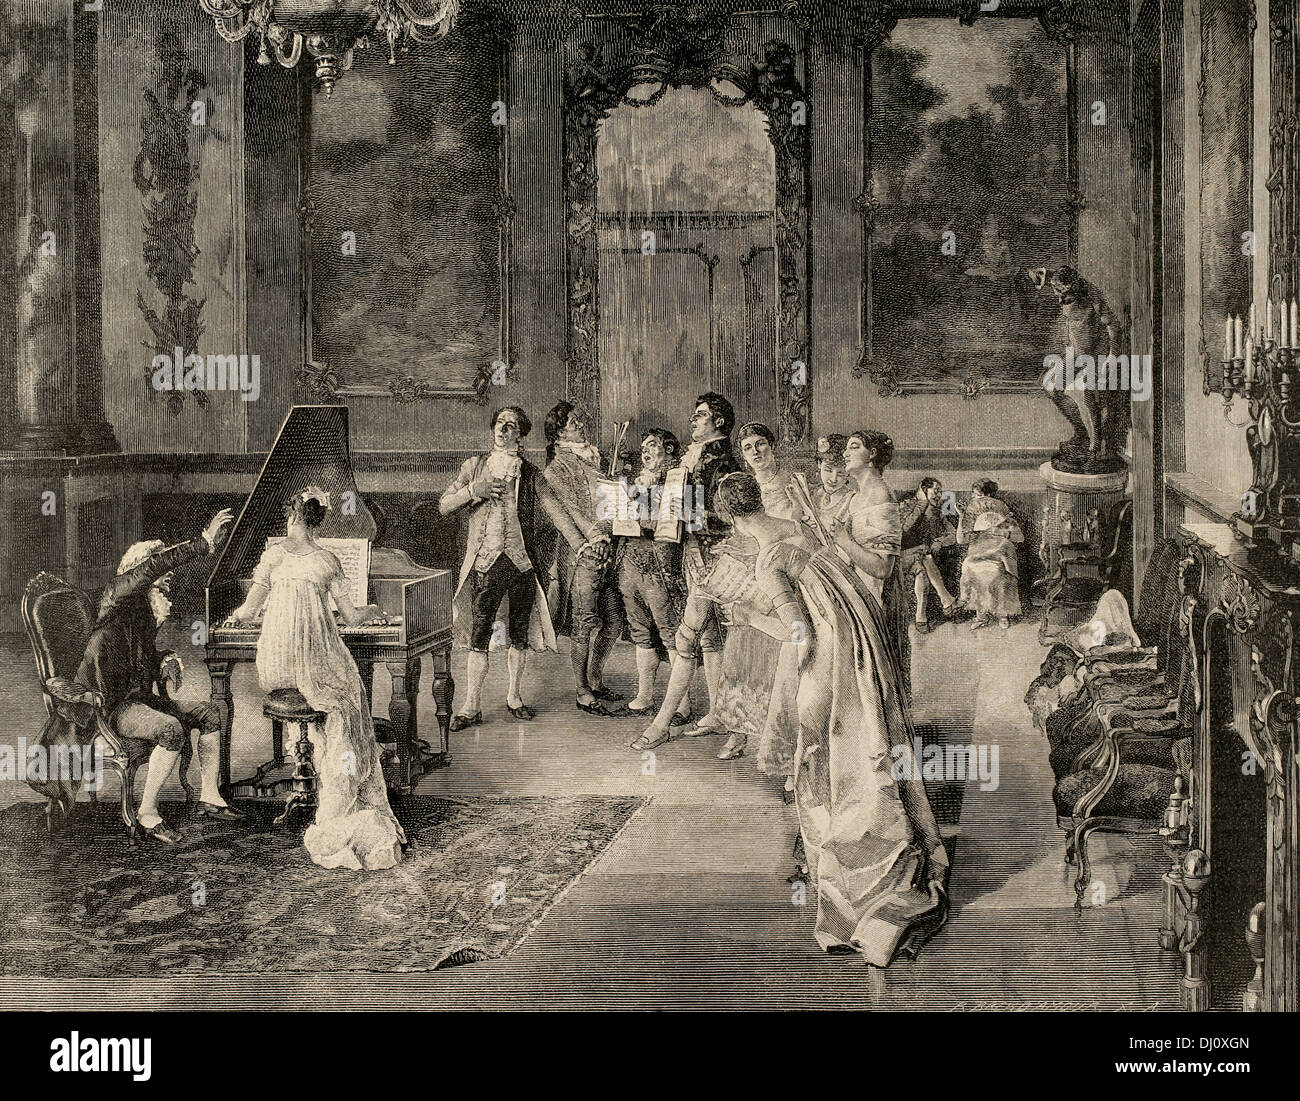 essay of a opera versailles painting of luis jimenez aranda essay of a opera versailles painting of luis jimenez aranda 1845 1928 spanish painter engraving